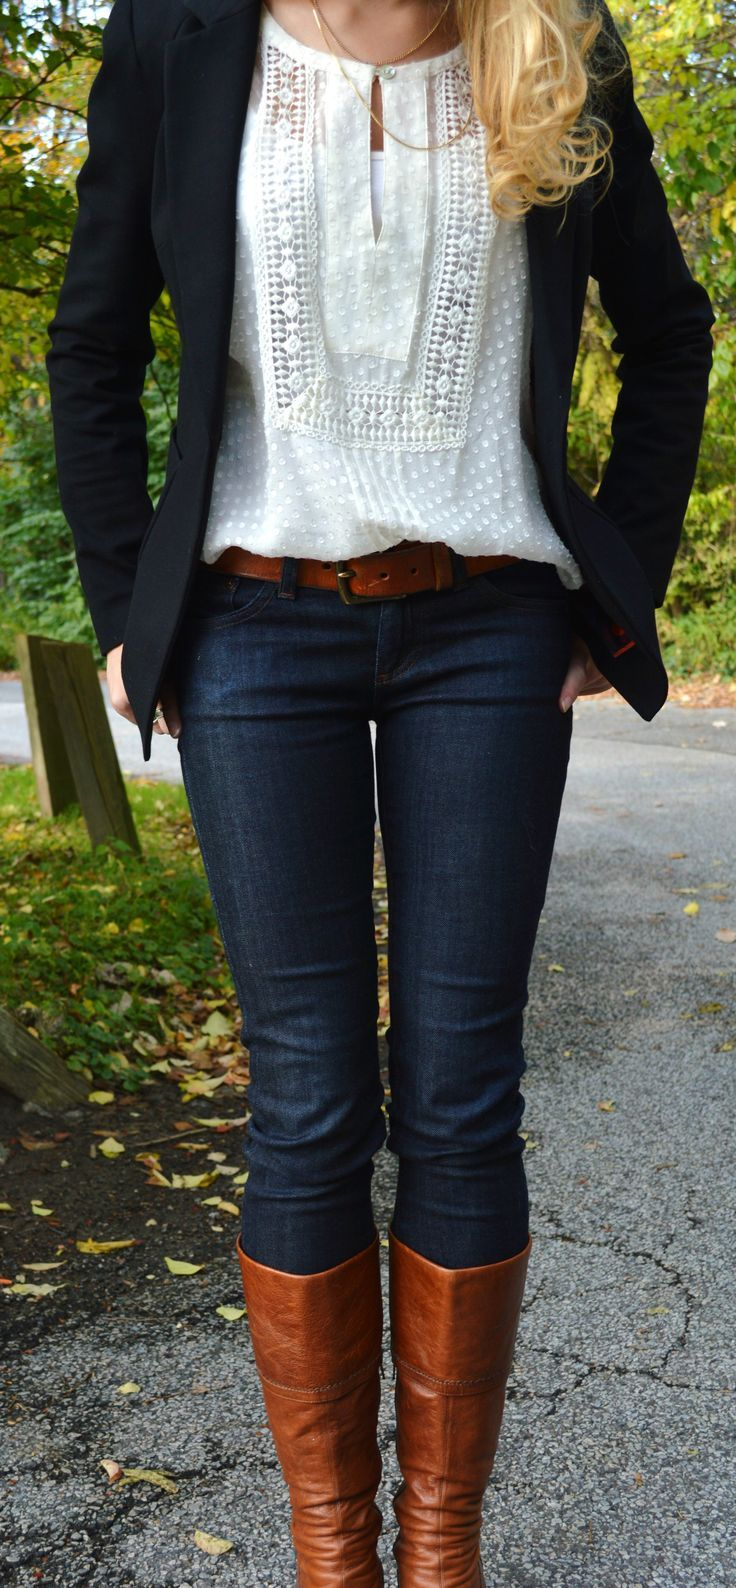 Fall transition: white lace blouse, jeans and boots